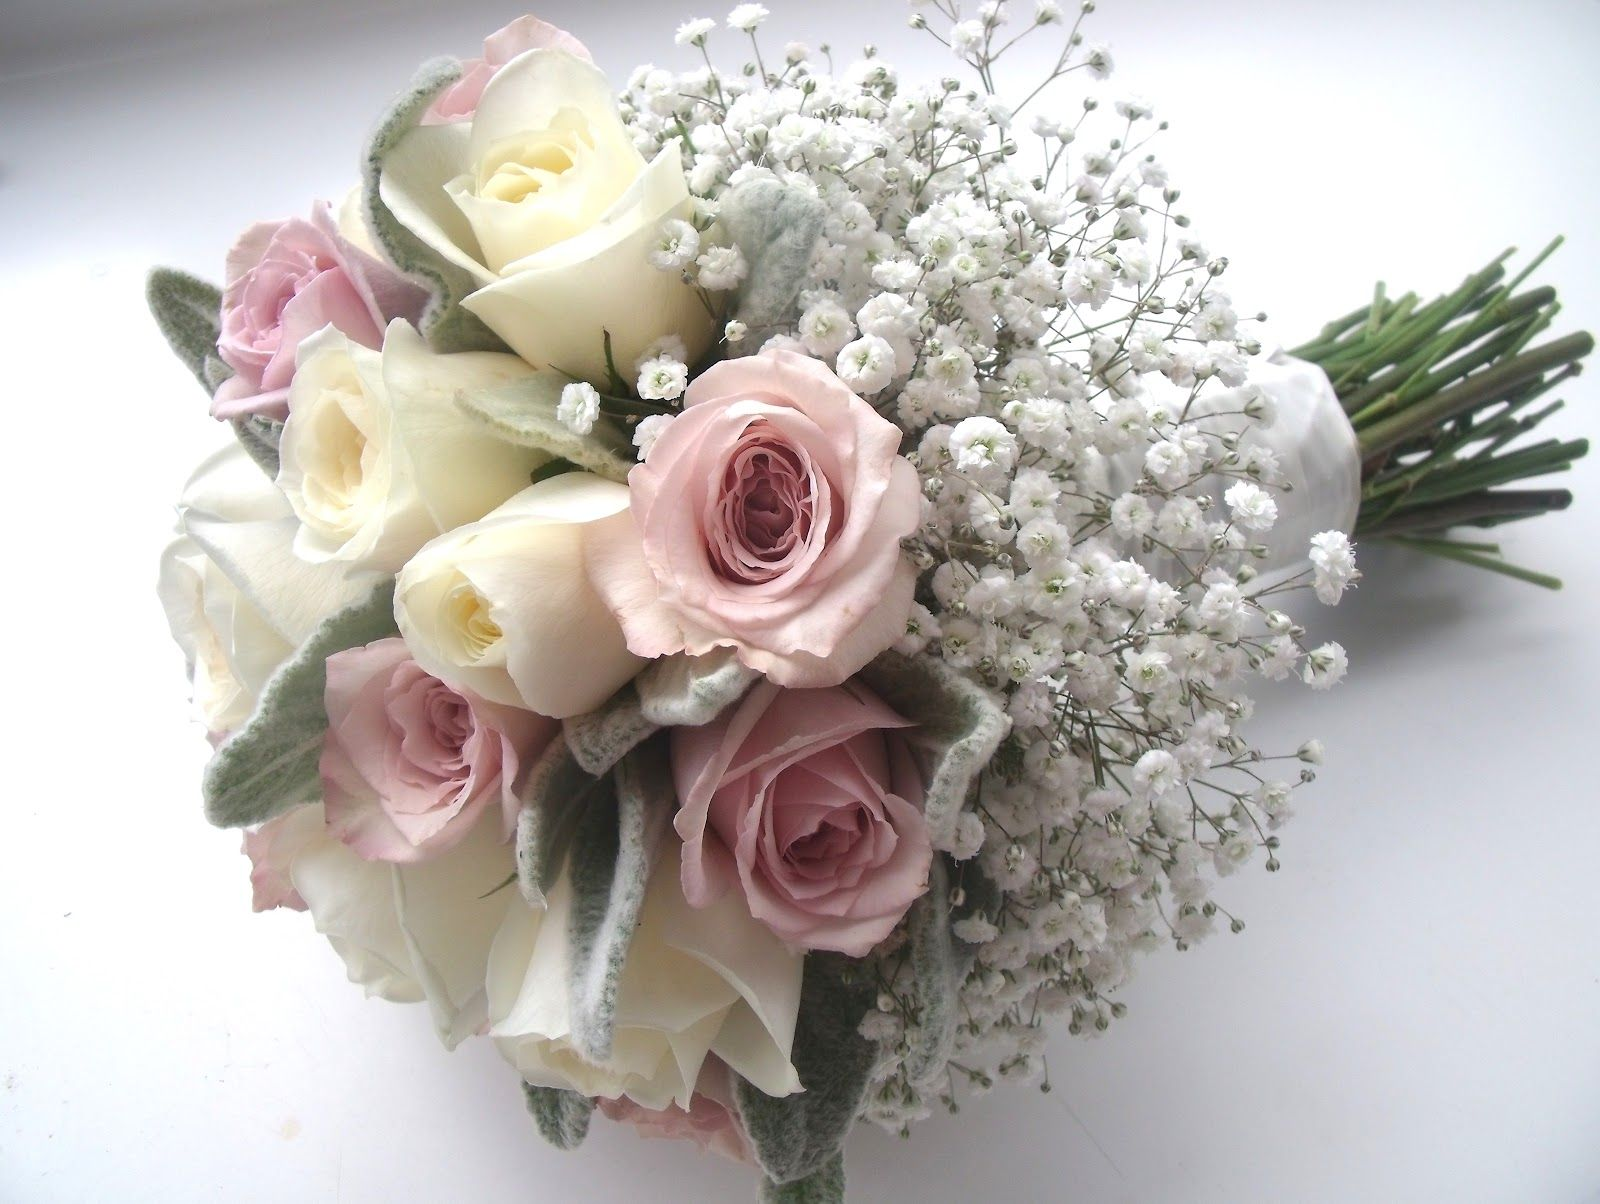 Rose and gyp flower posy bouquet wedding bouquets pinterest